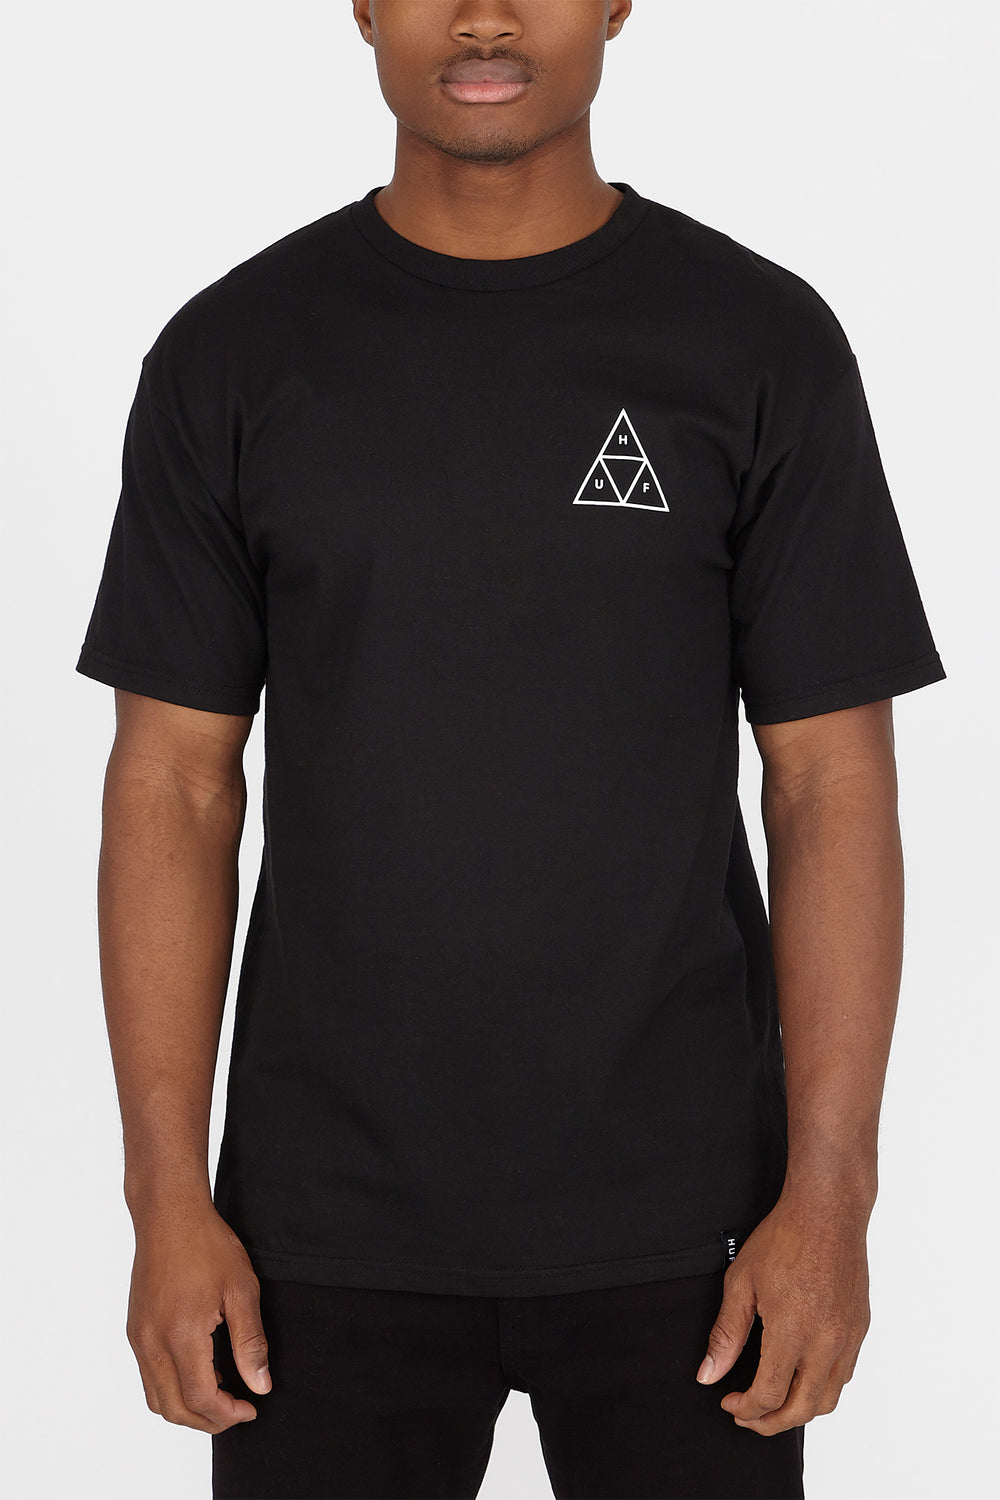 T-Shirt Triple Triangle Huf Noir